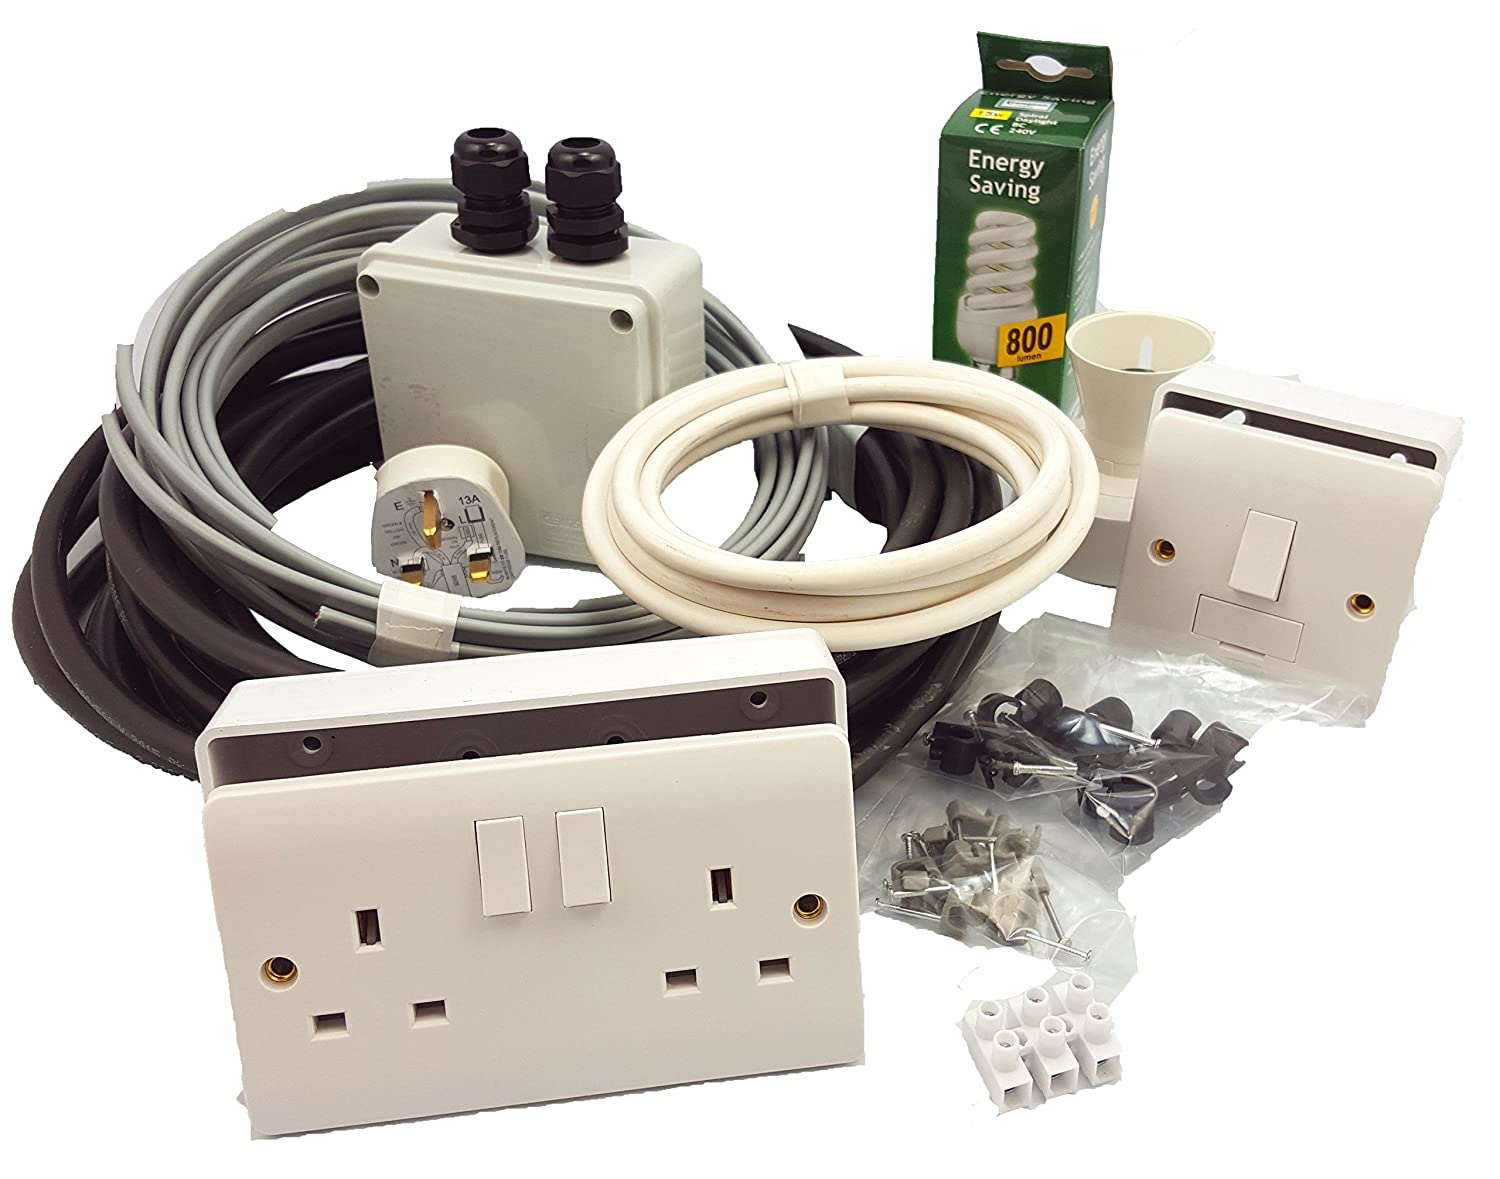 Garden Shed Complete Electrics Kit Incl Double Socket Light Point Wiring Up Consumer Unit And Underground Twin Earth Cable Kitchen Home